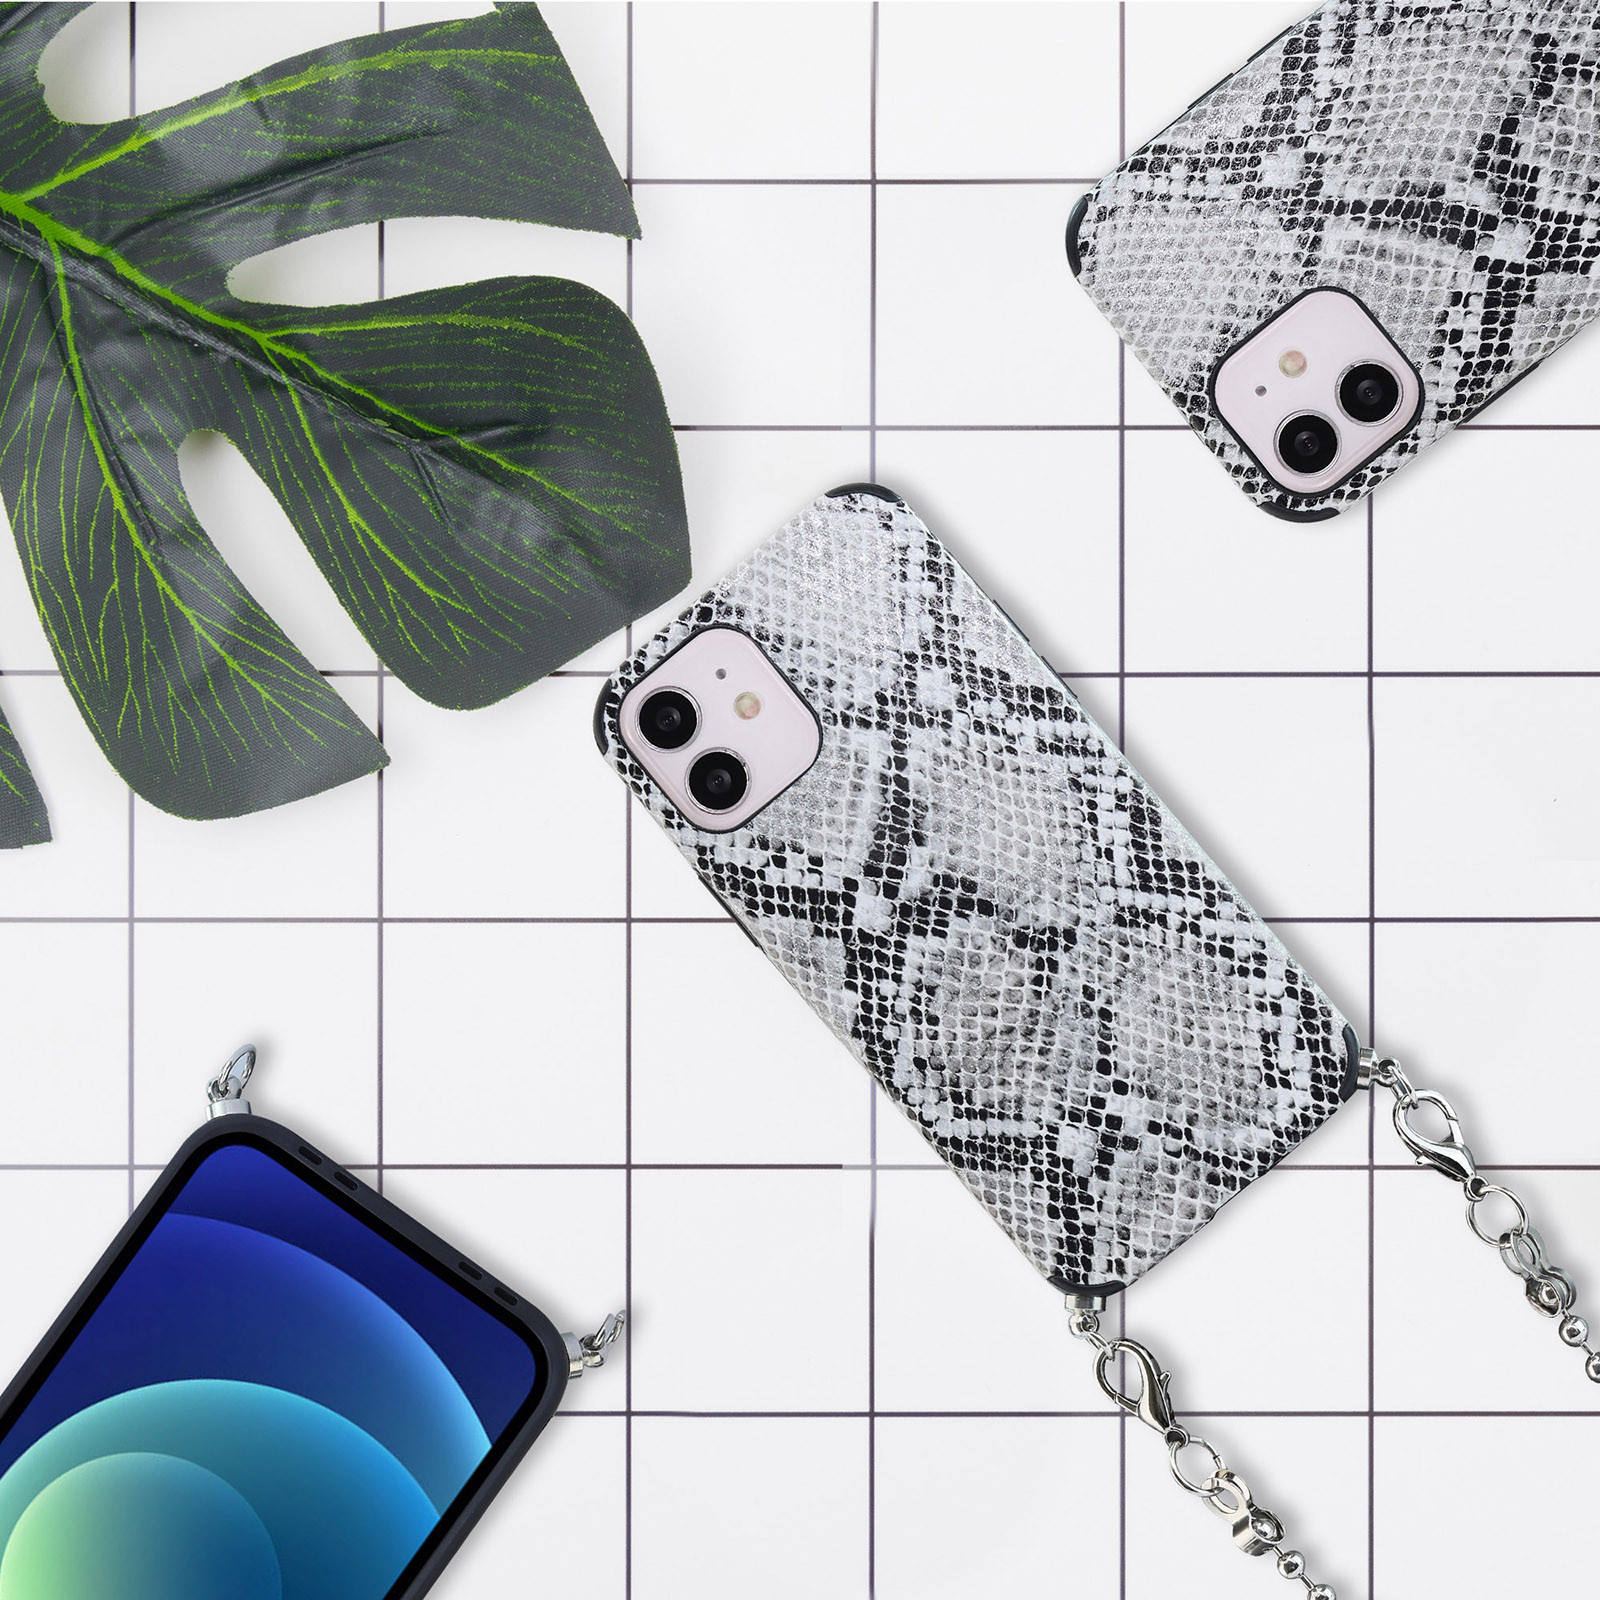 Leather Snakeskin Pattern Phone Case Shockproof Case With Chain For Iphone 12mini/12/12pro/12pro Max Women Chain Phone Cover #3